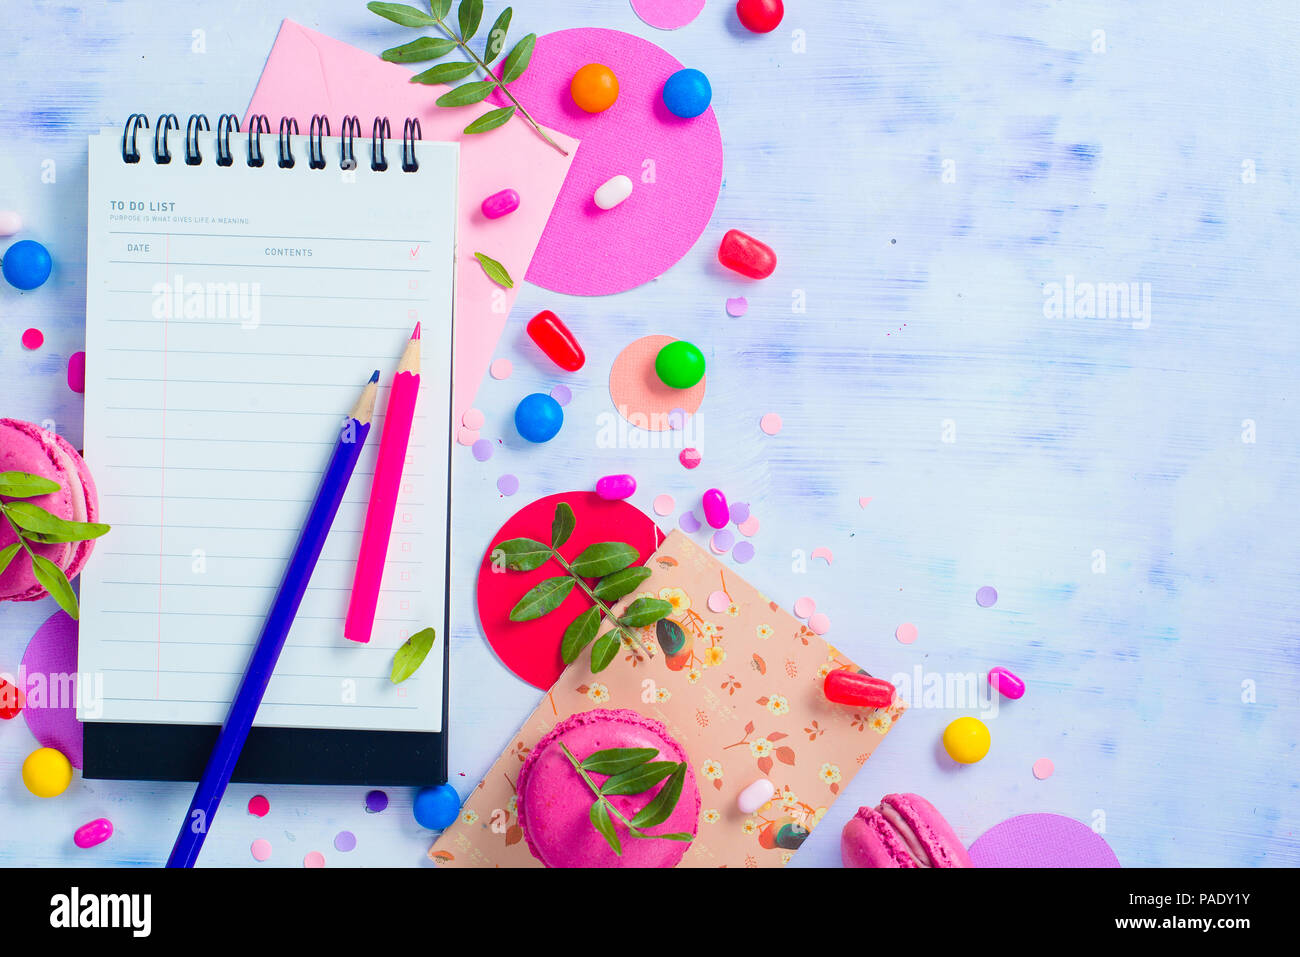 Party planning concept. Background with confetti, notepads, stationery, candies and macaroon cookies. Colorful objects flat lay in high key with copy space. - Stock Image